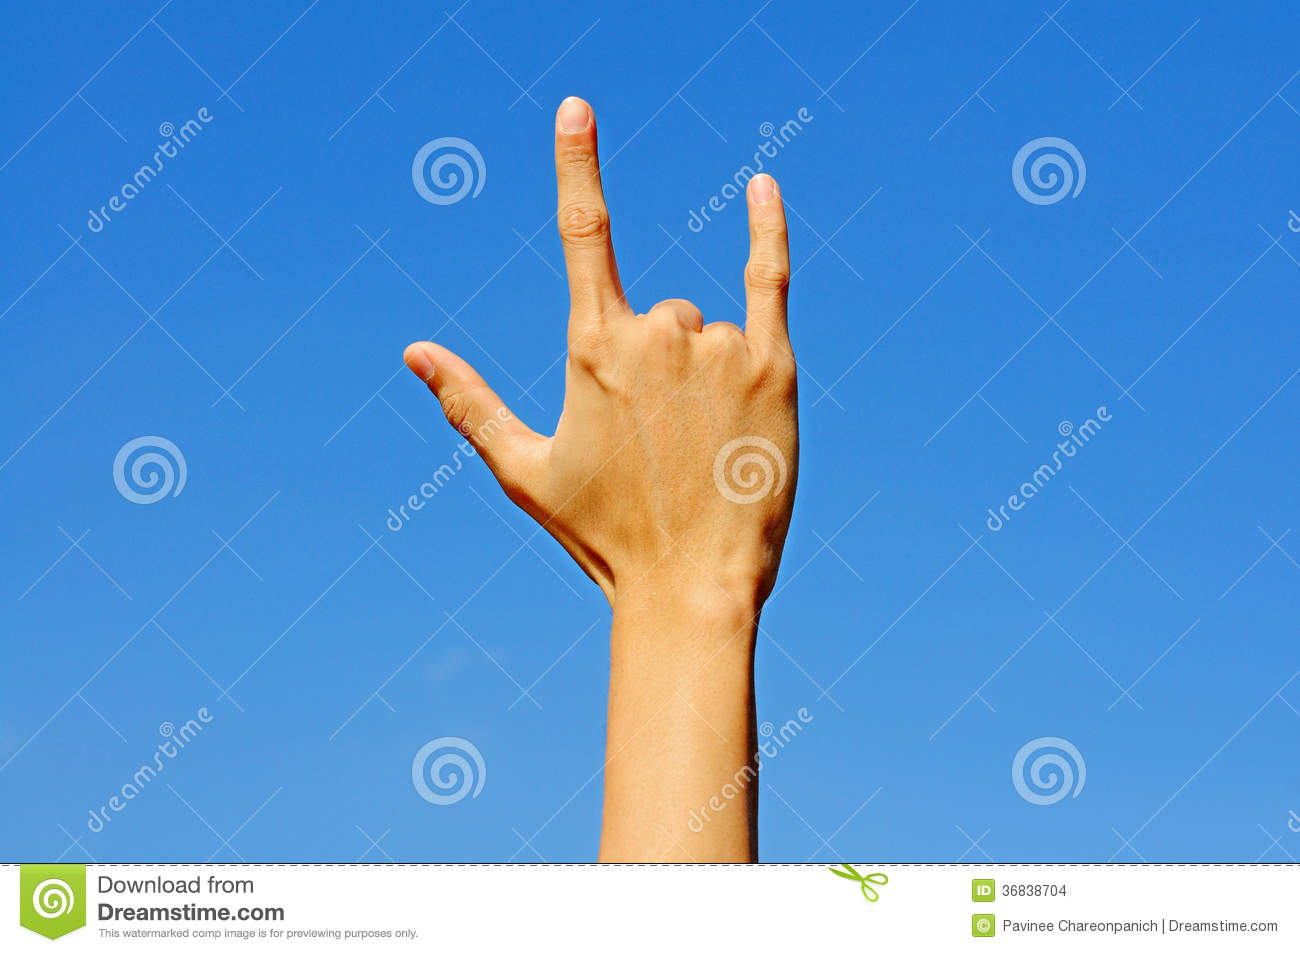 I Love You In Hand Sign Language On Blue Sky Background Stock Photo